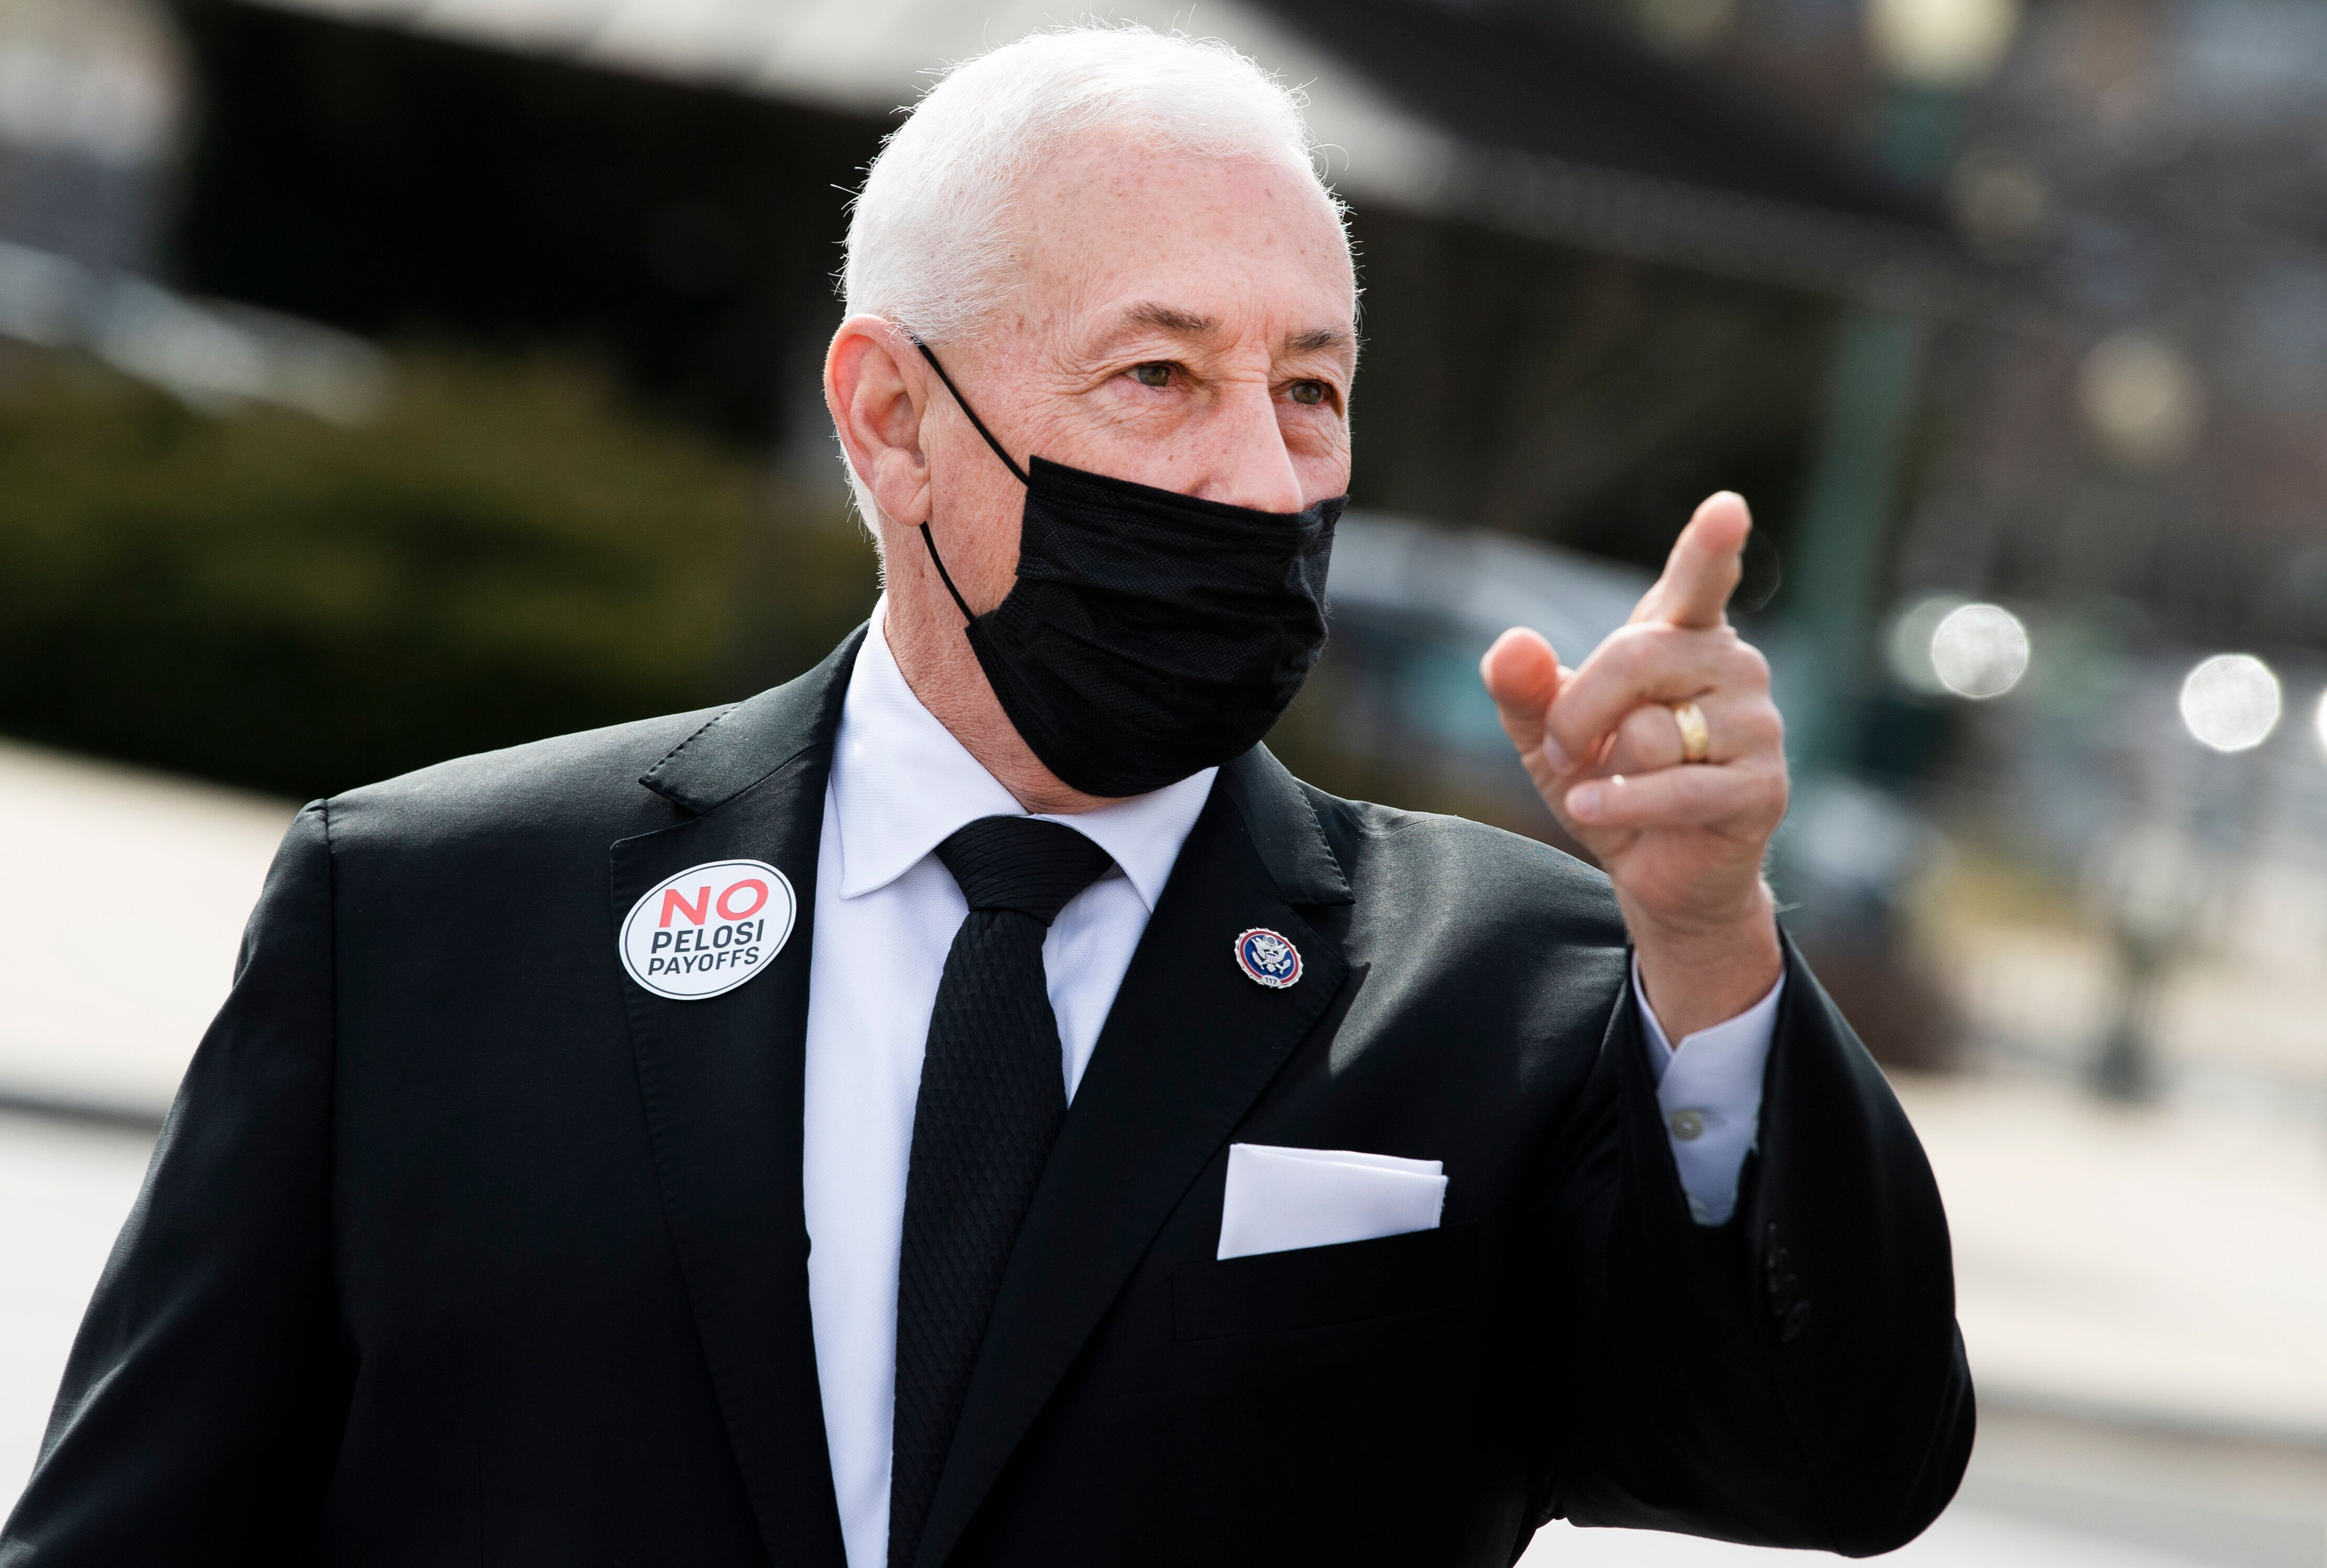 Rep. Greg Pence (R-Ind.) voted against establishing an independent commission to investigate the Jan. 6 attack on the U.S. Ca